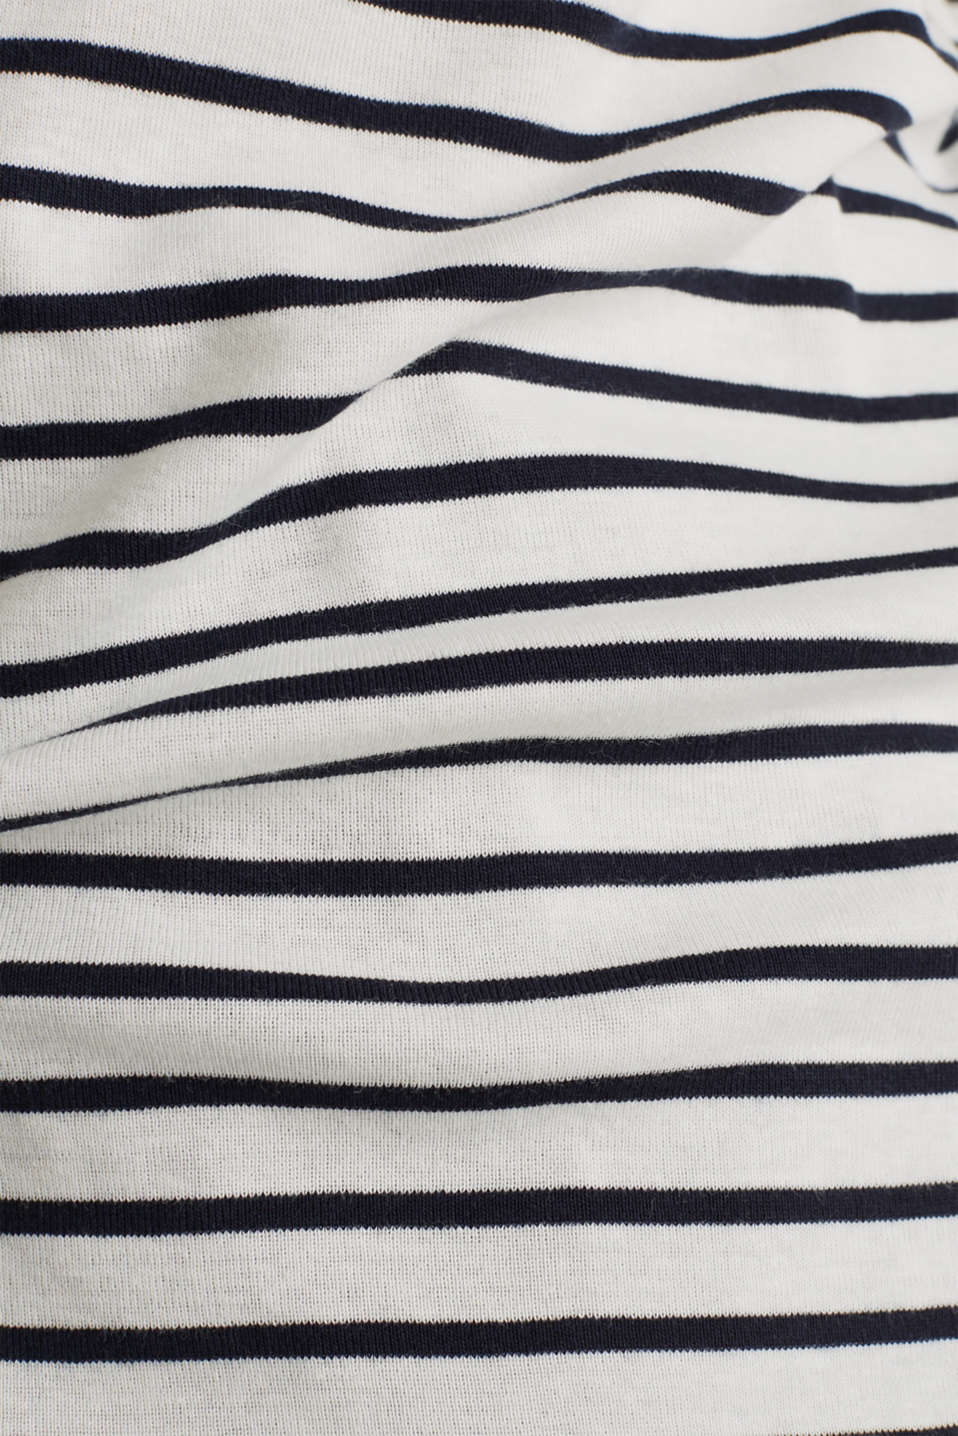 Striped top with ribbed borders, 100% cotton, NAVY, detail image number 4